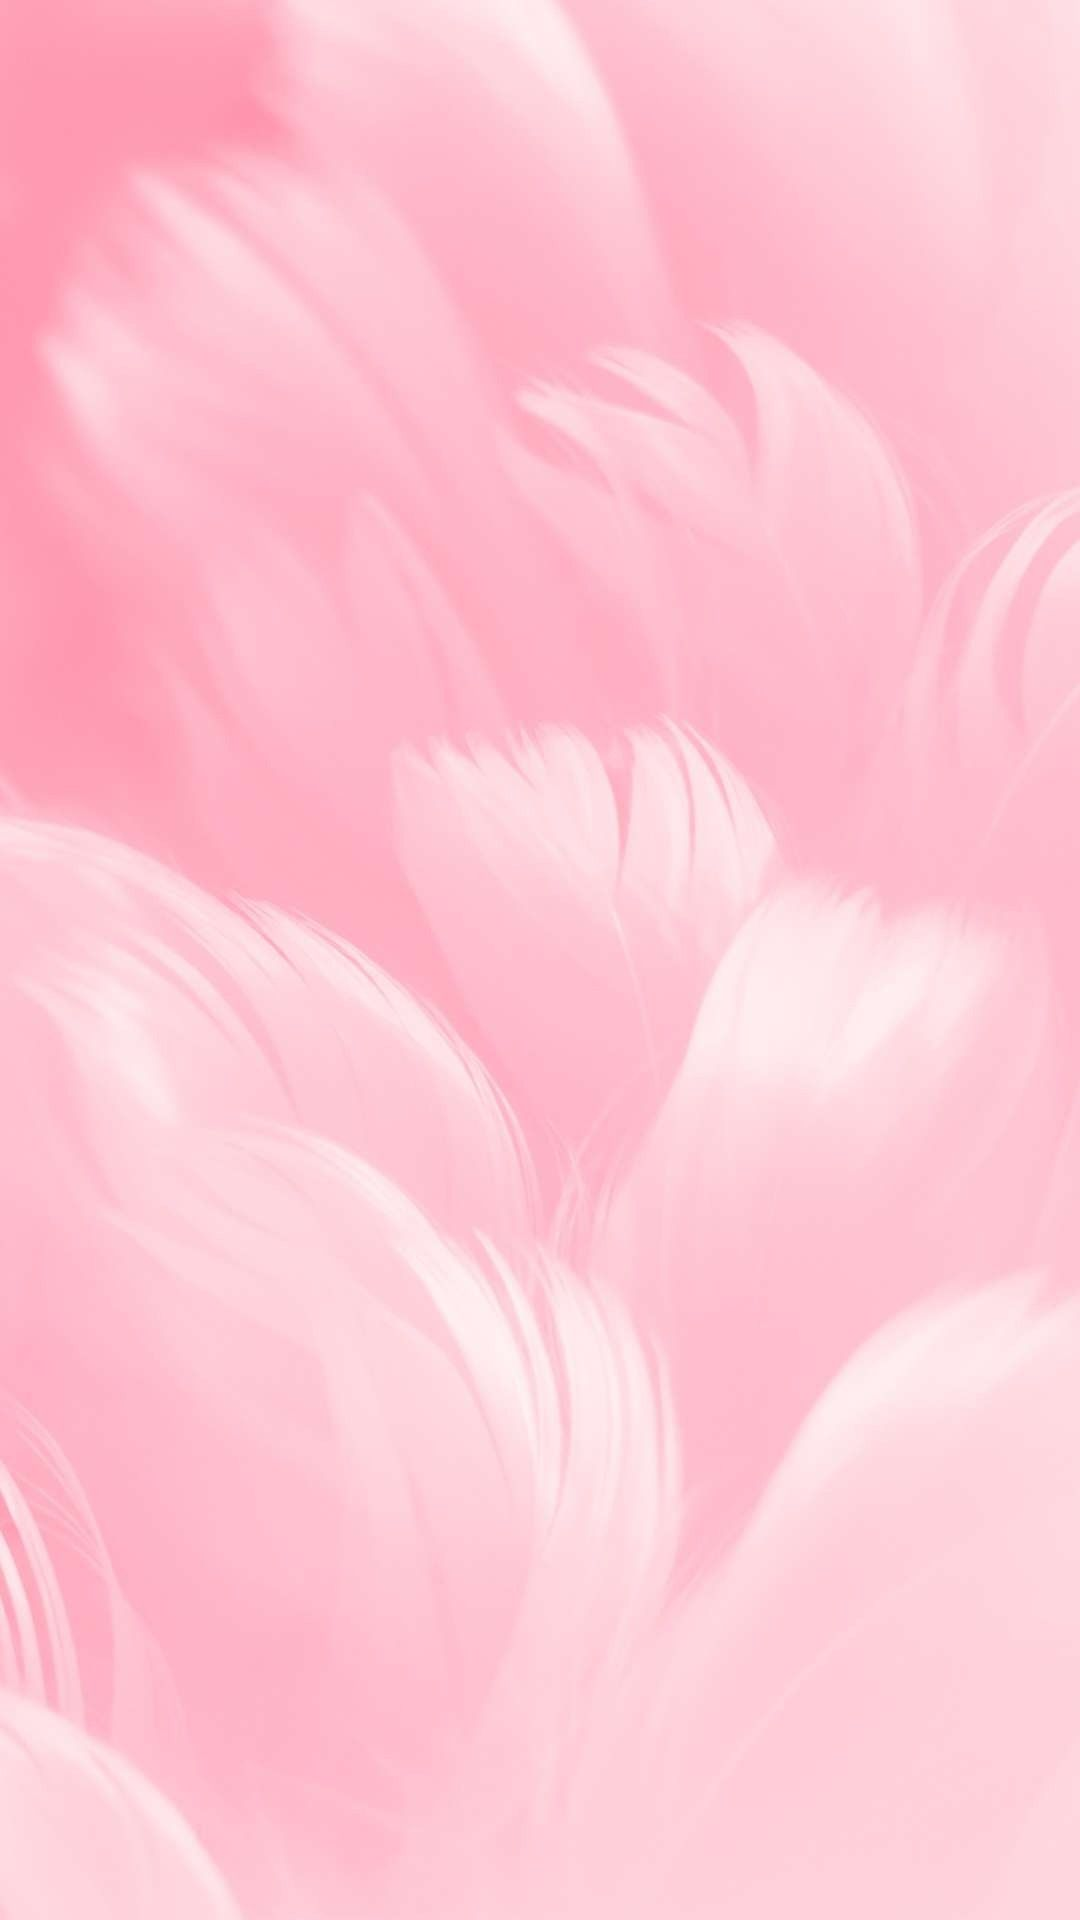 Pink Feathers Hd Pastel Pink Wallpaper Feather Wallpaper Pink Wallpaper